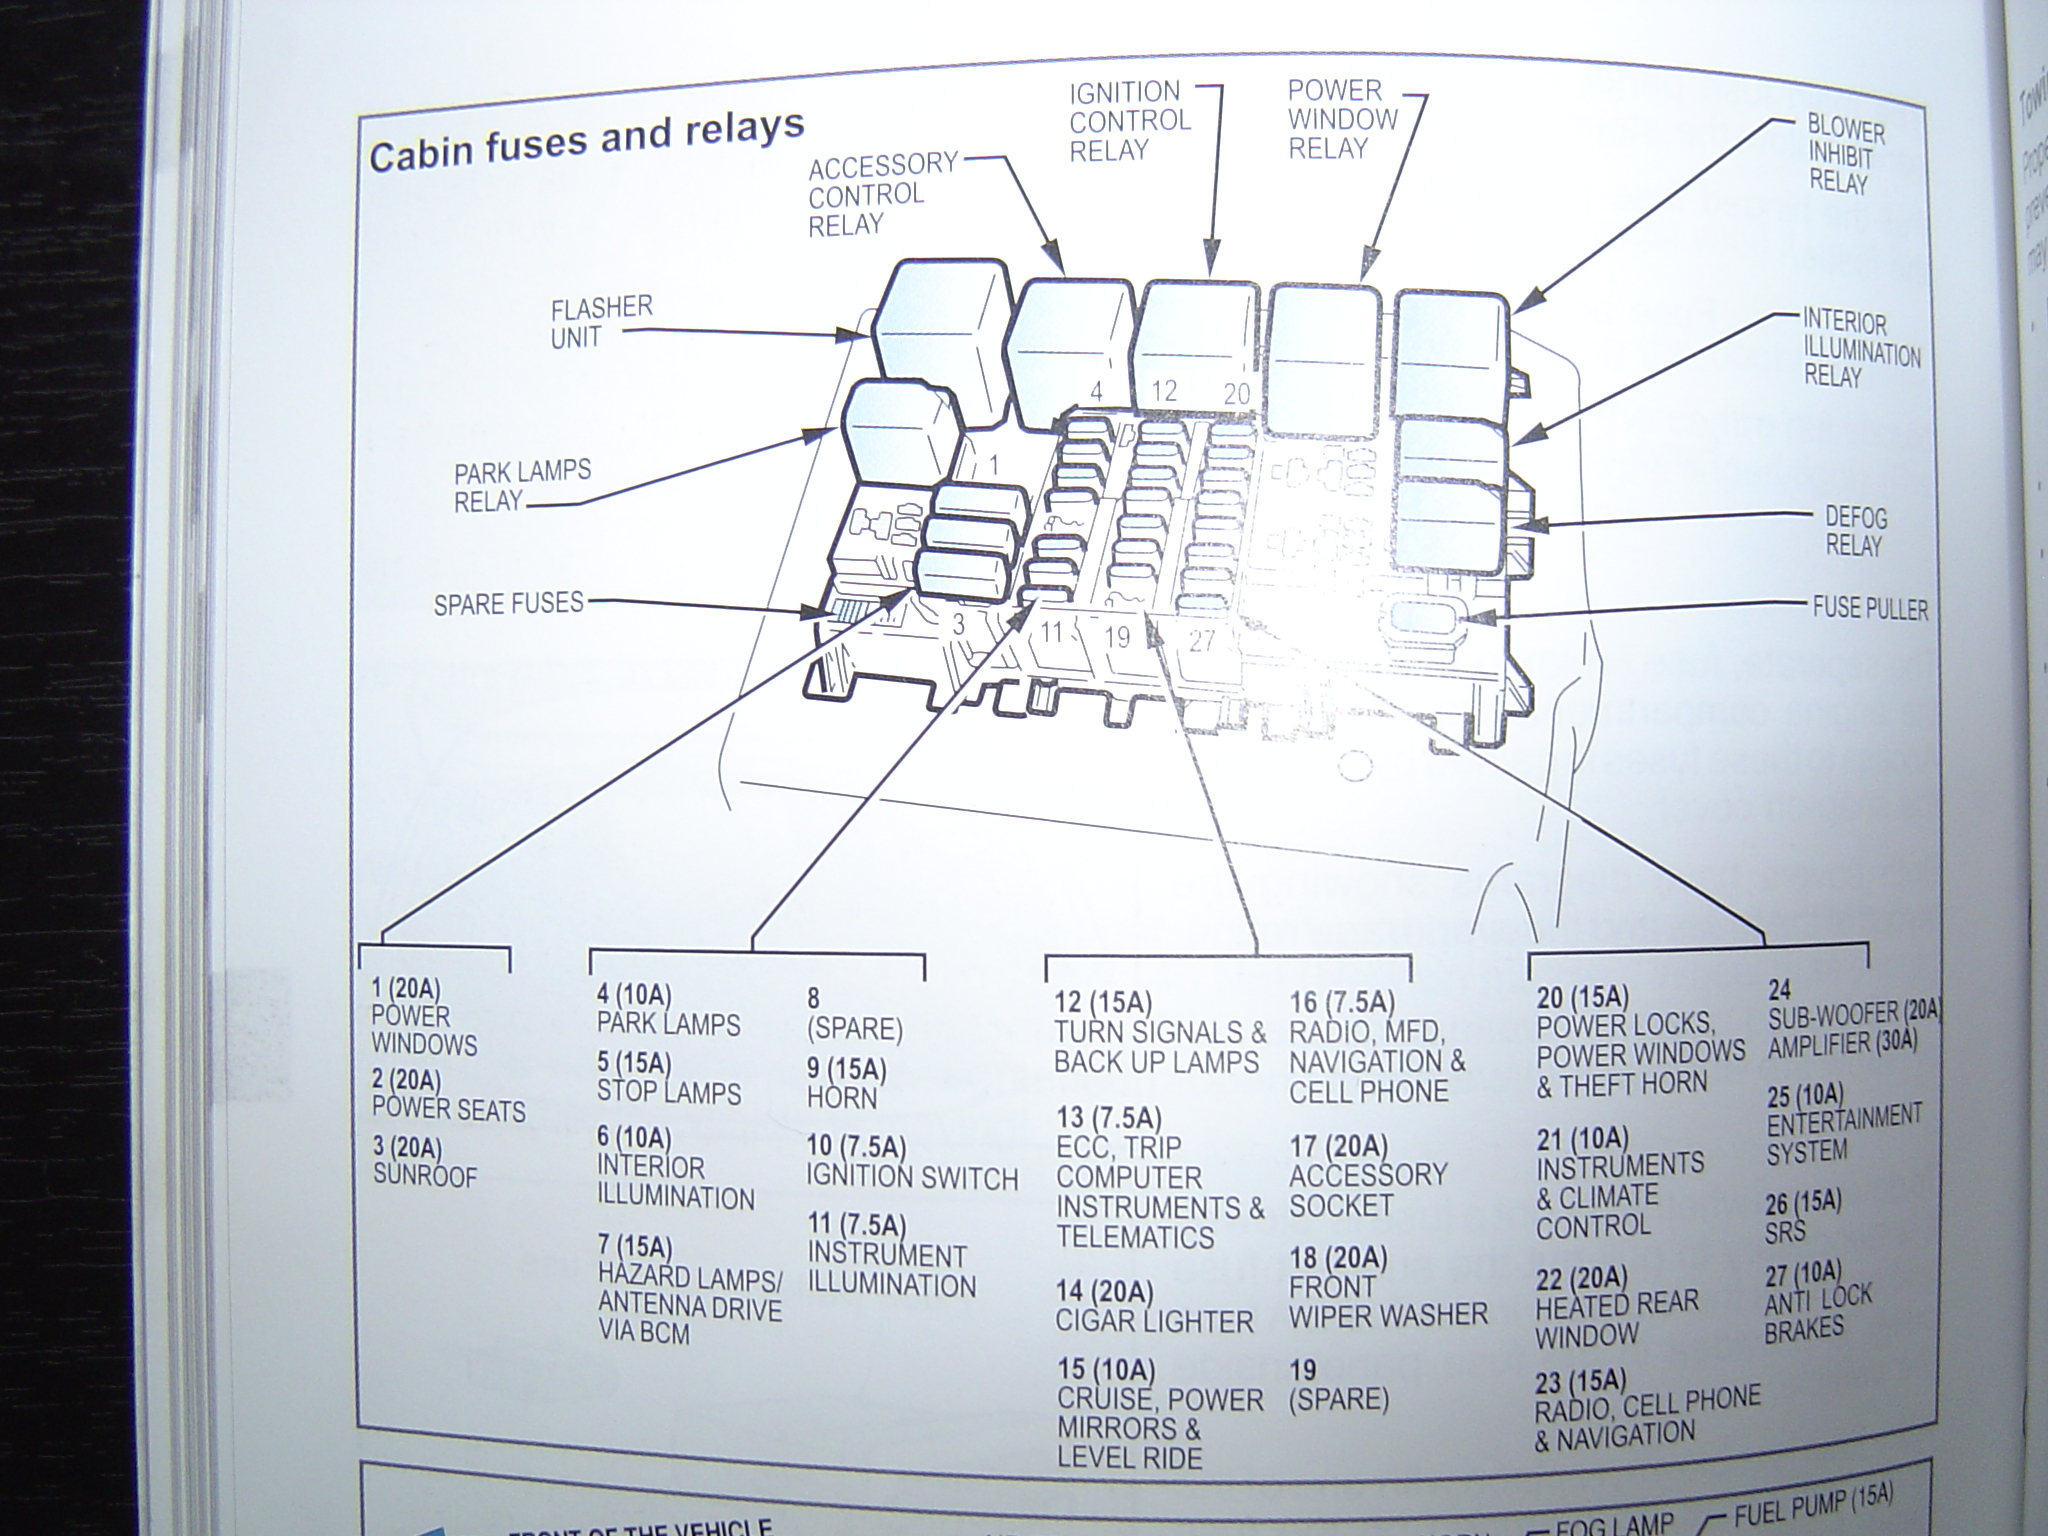 VY_CABIN_FUSEBOX cabin fuse box diagrams ba bf vx vy vz ve 2001 au falcon fuse box diagram at aneh.co